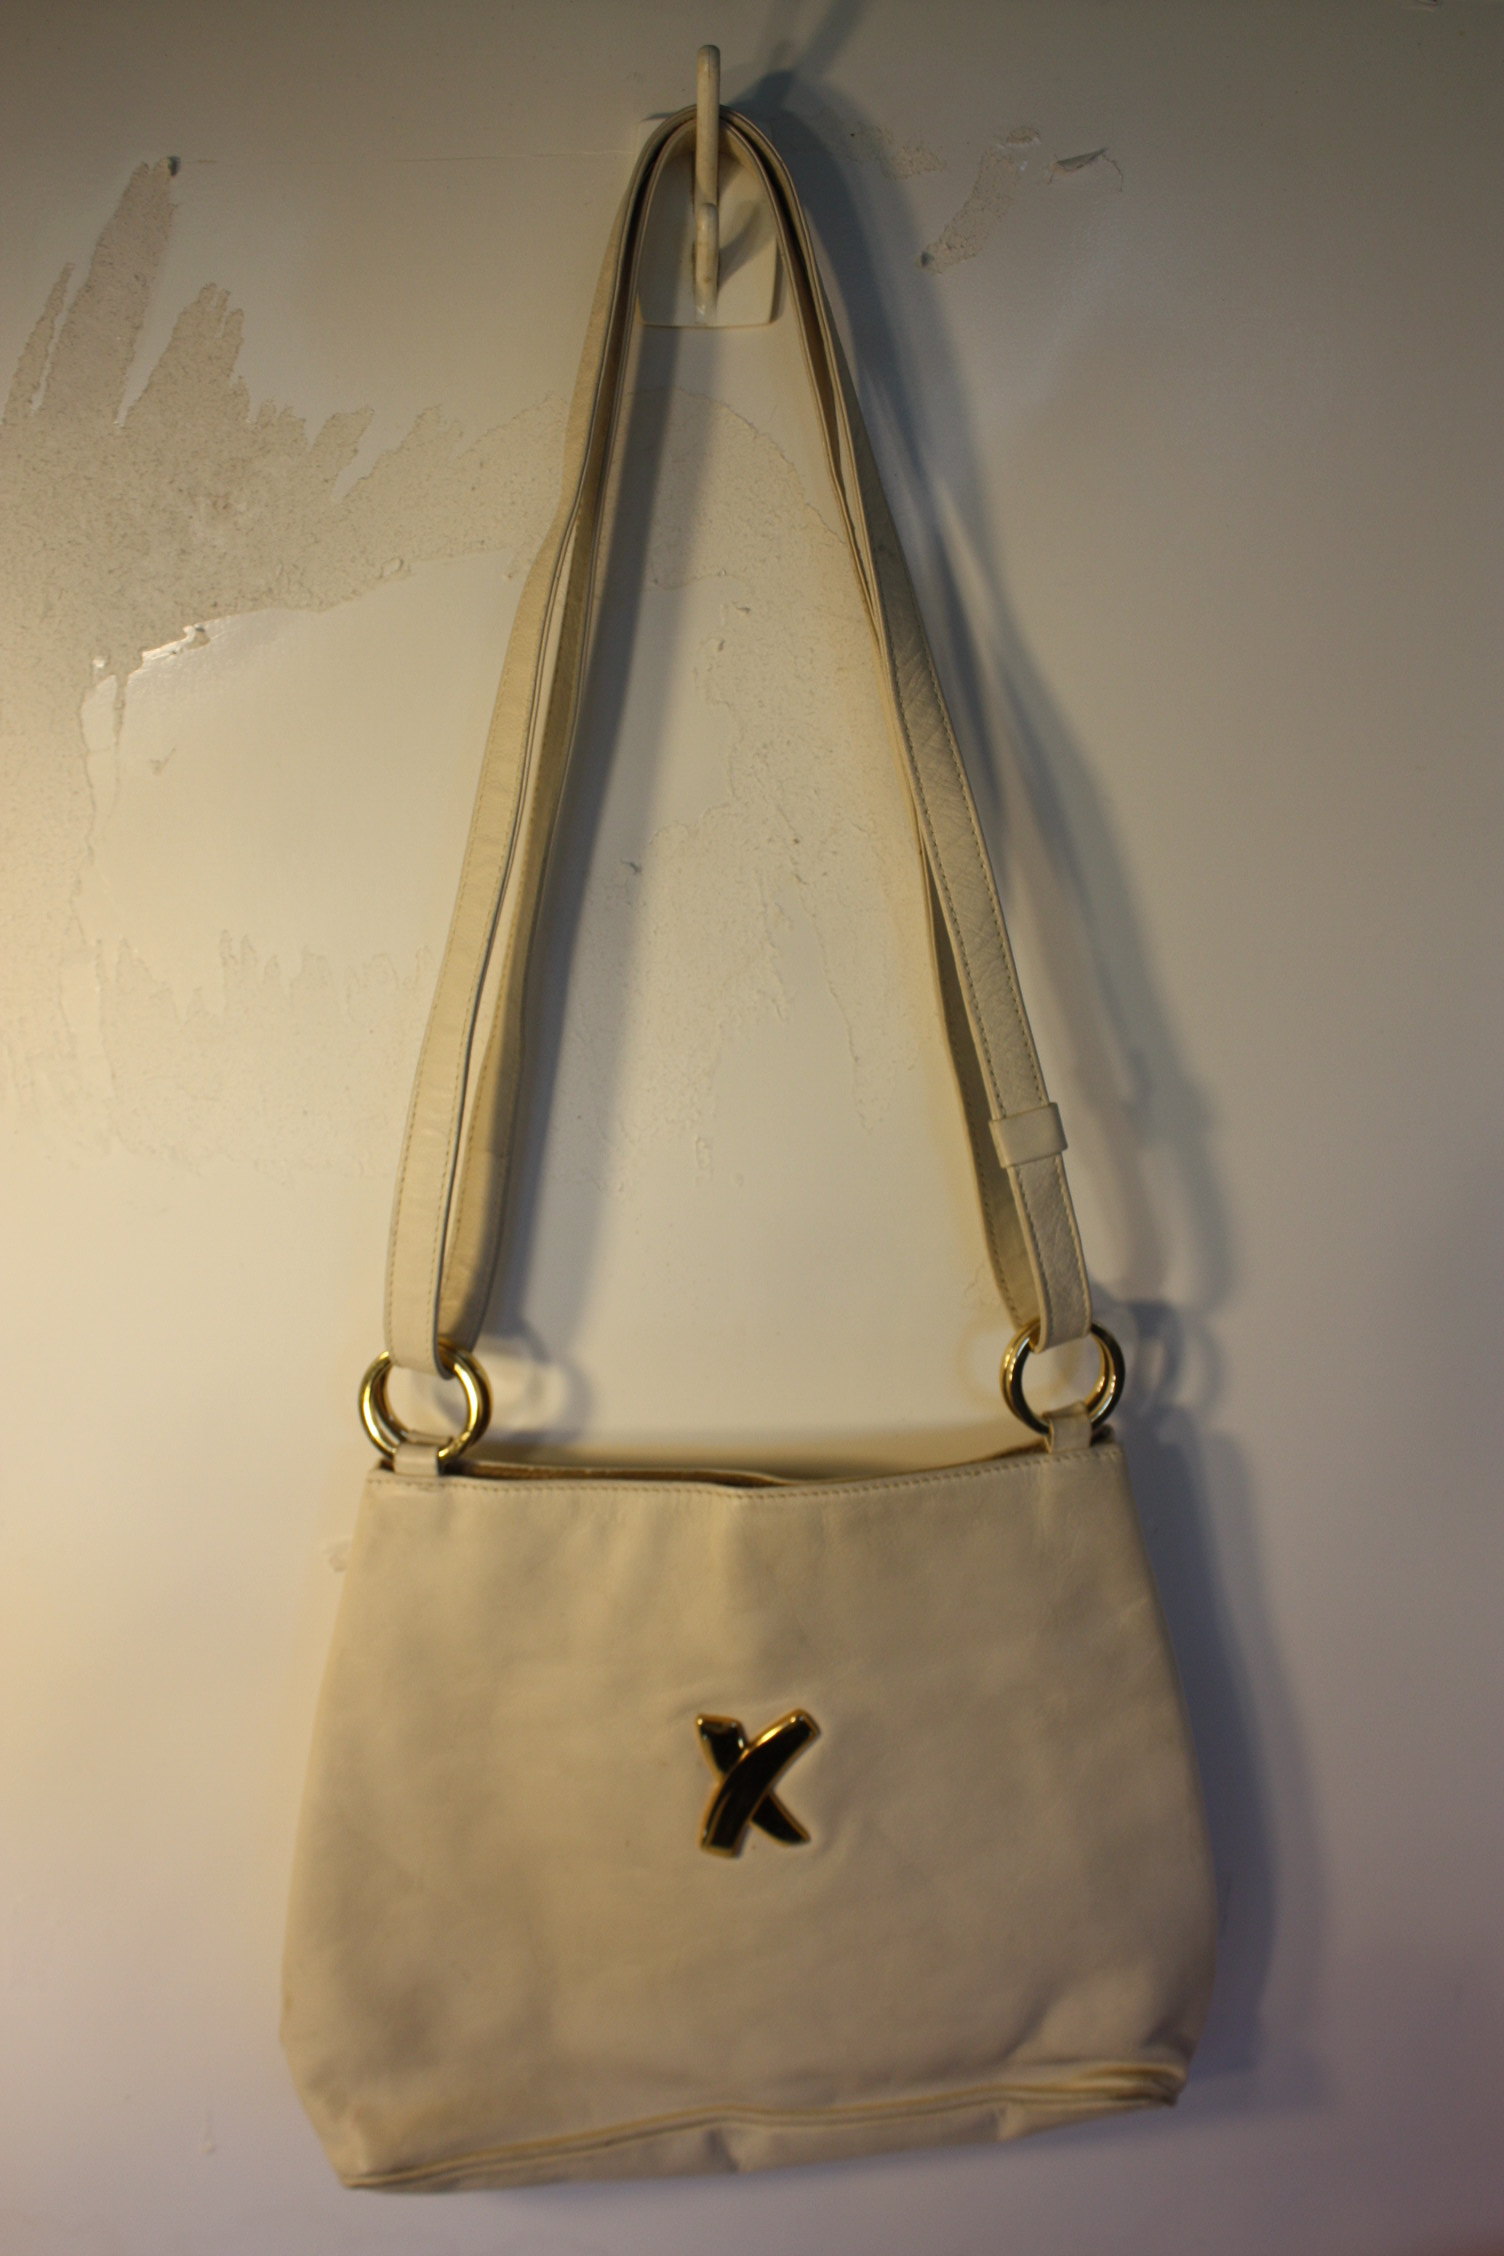 Paloma Picasso Made In Italy White Purse Hand Bag Pretty